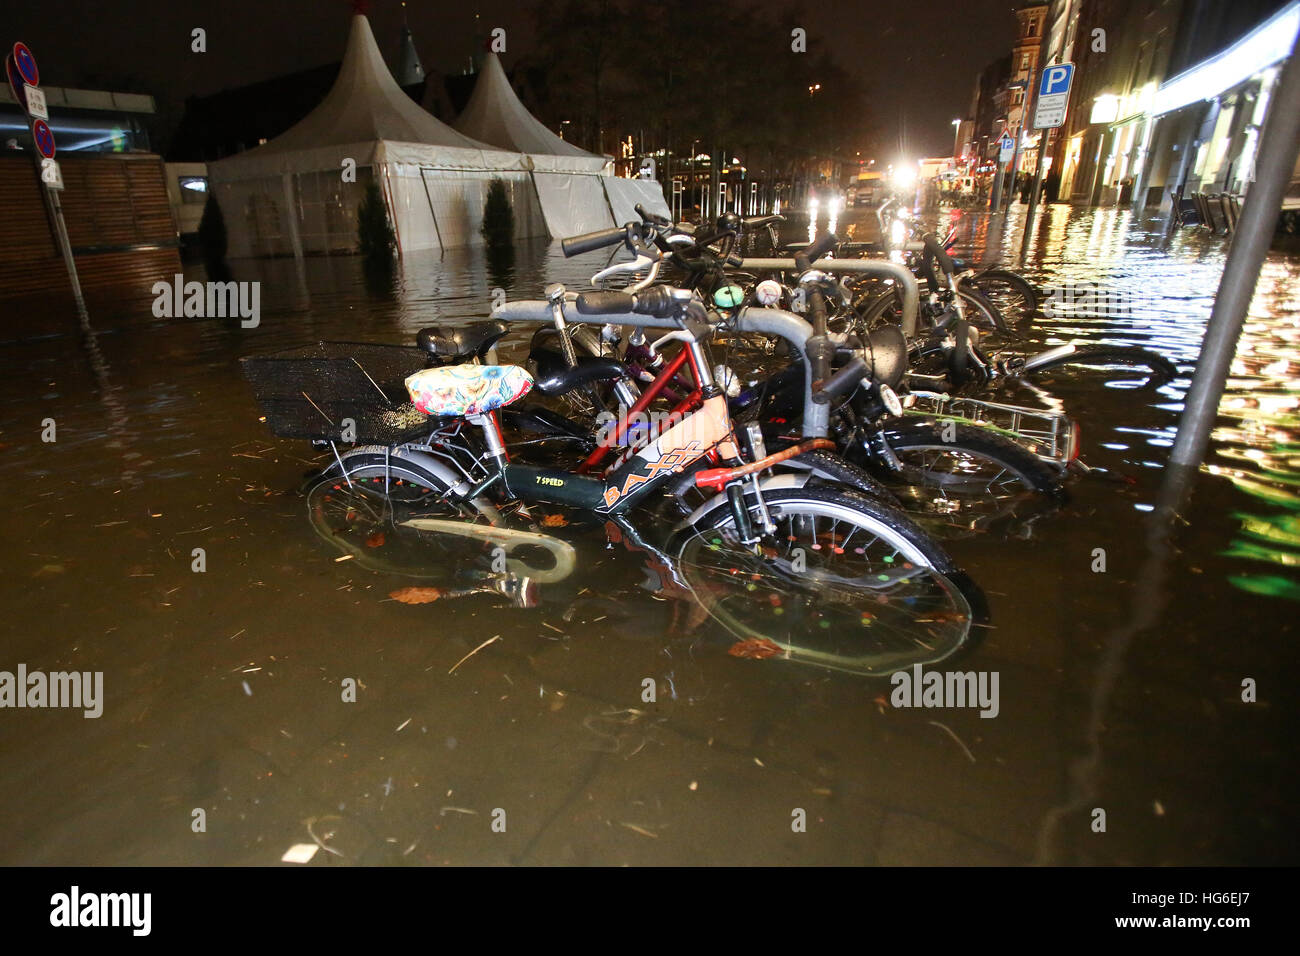 Luebeck, Germany. 04th Jan, 2017. Bicycles in a flooded street in Luebeck, Germany, 04 January 2017. The Federal Stock Photo